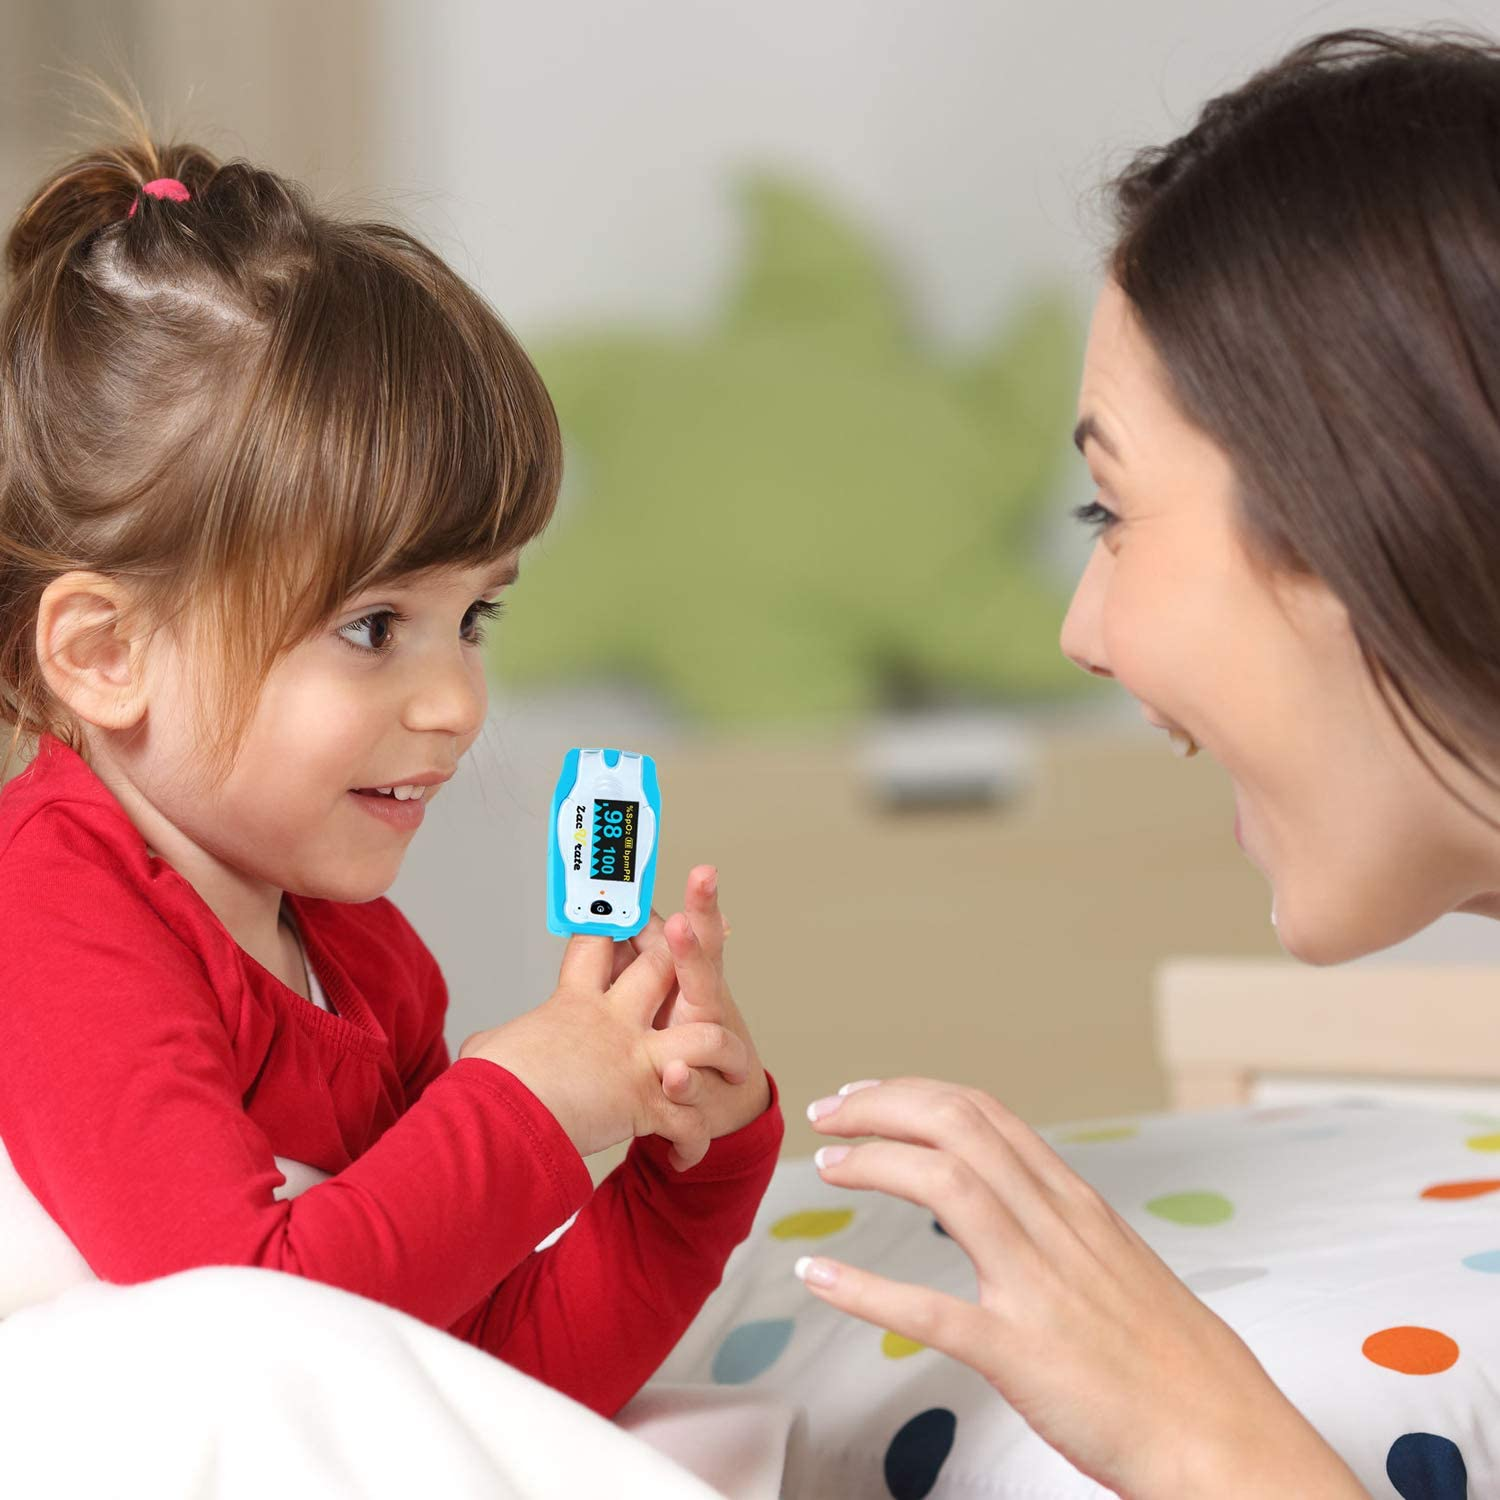 Zacurate 430P Children Pulse Oximeter